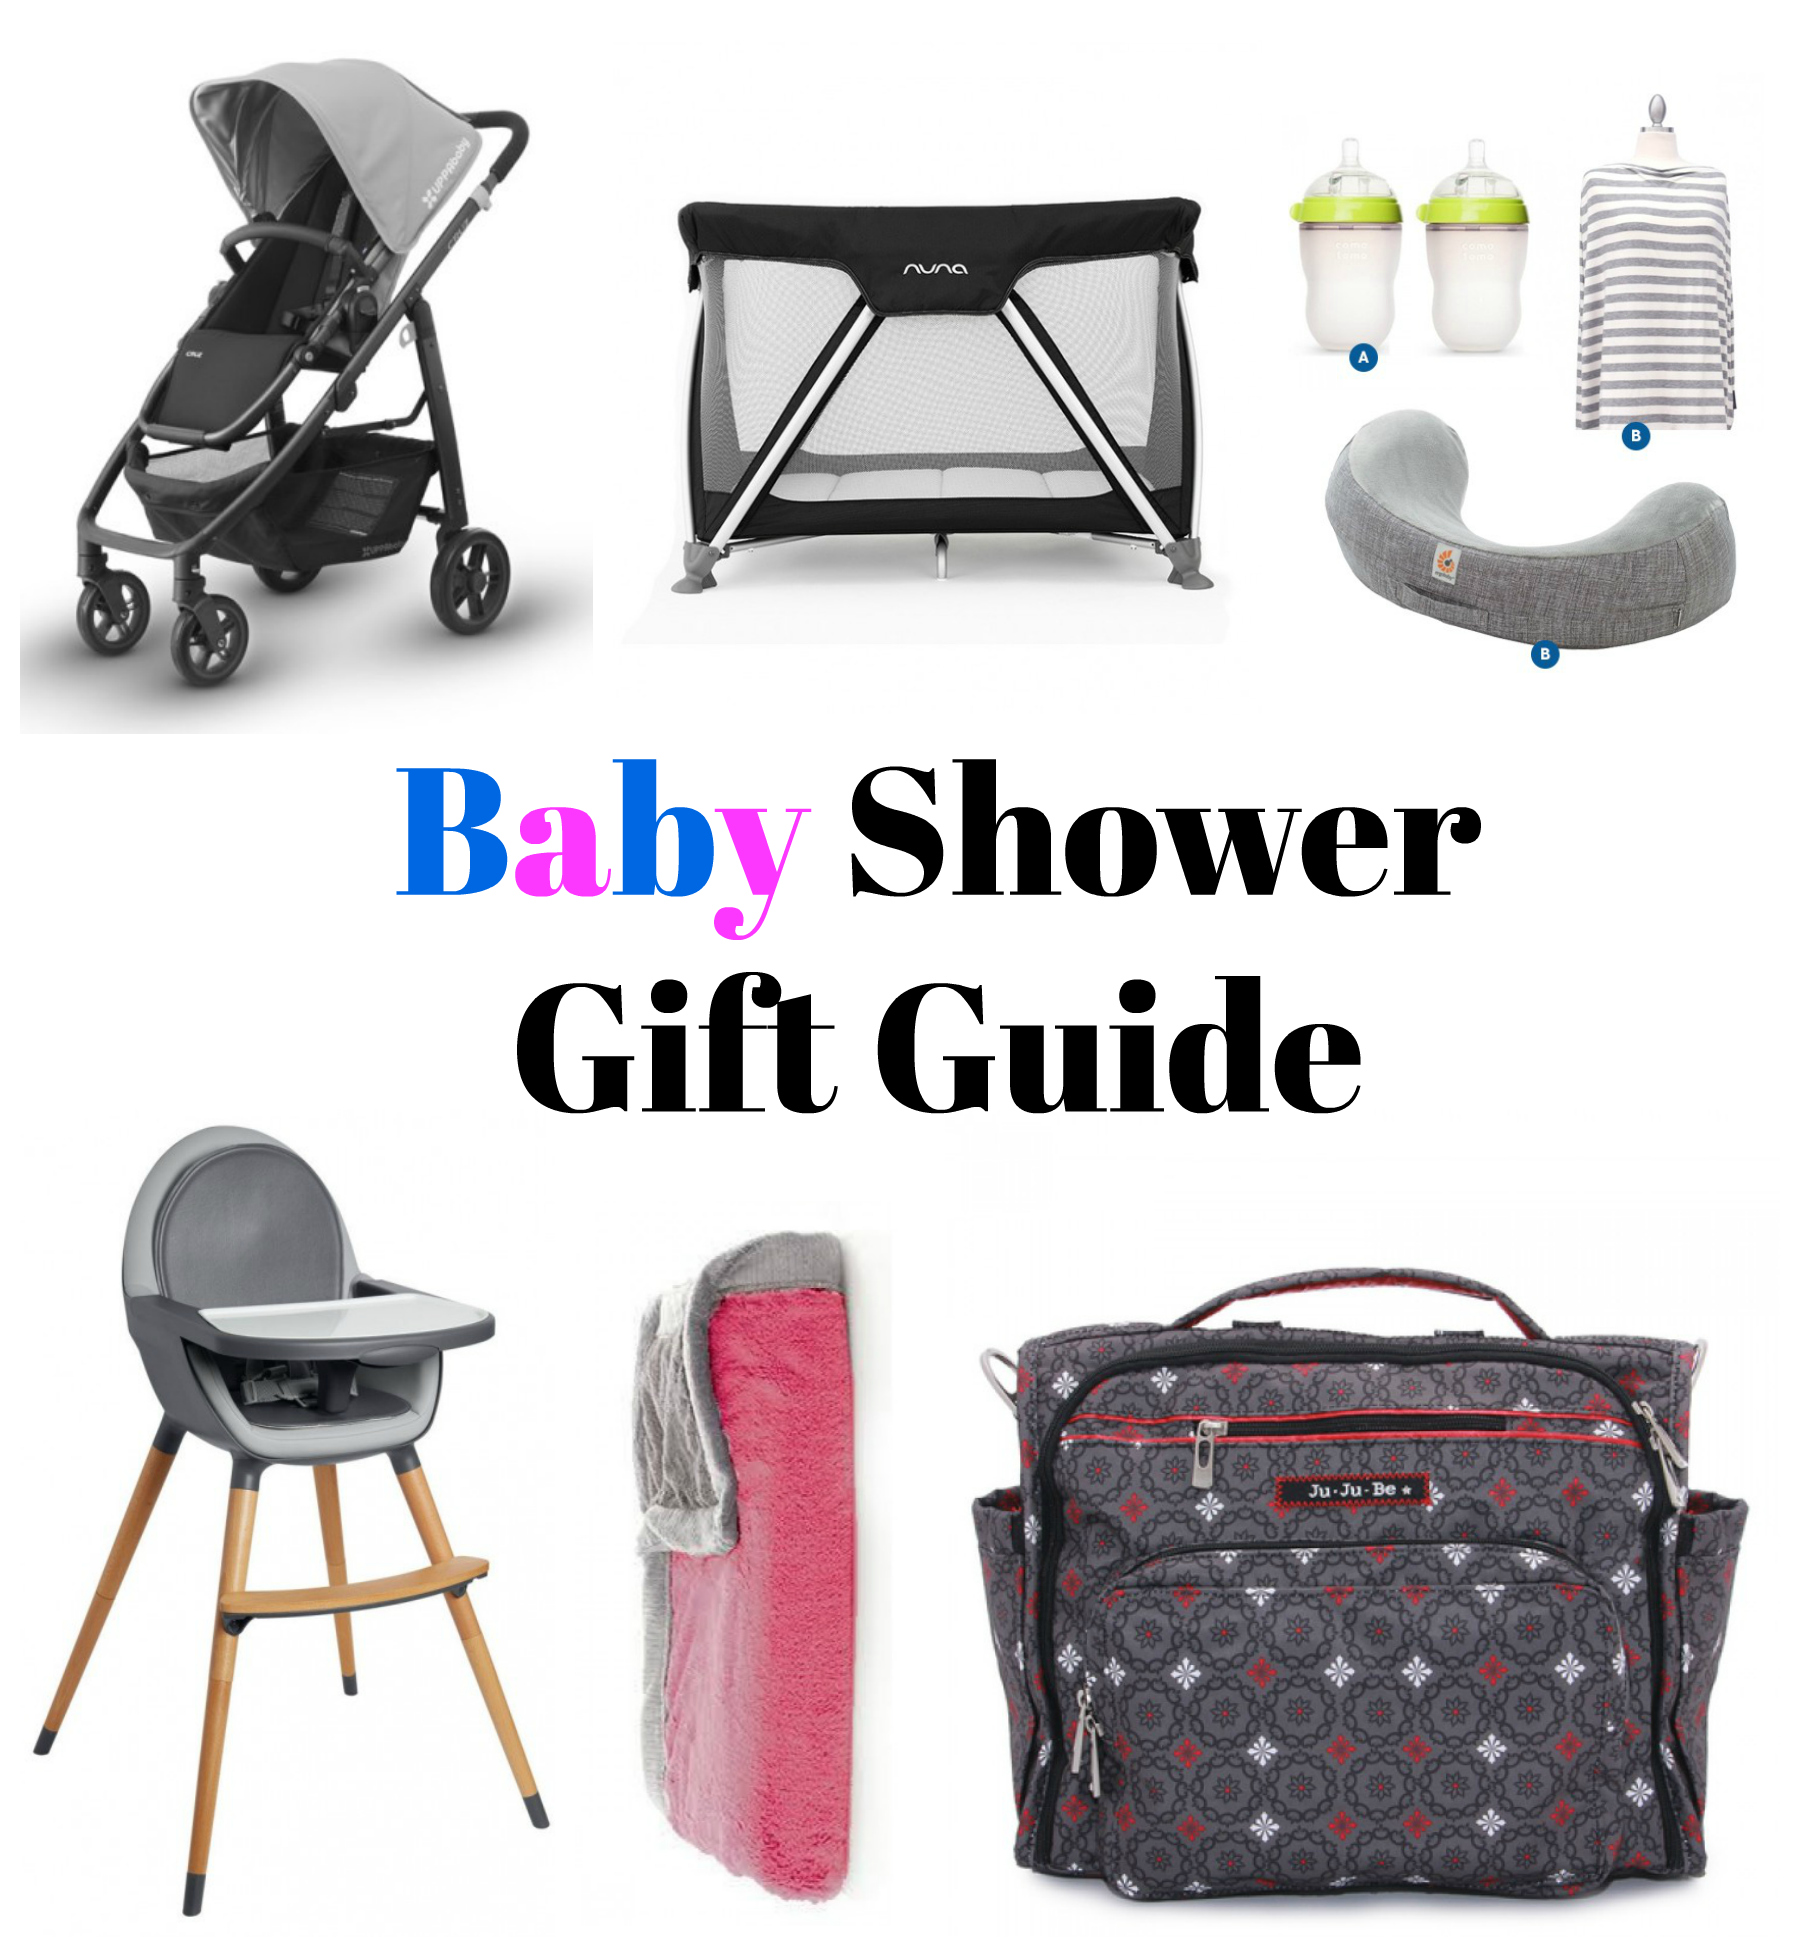 Baby Gift Guide : Baby shower gift guide outnumbered to